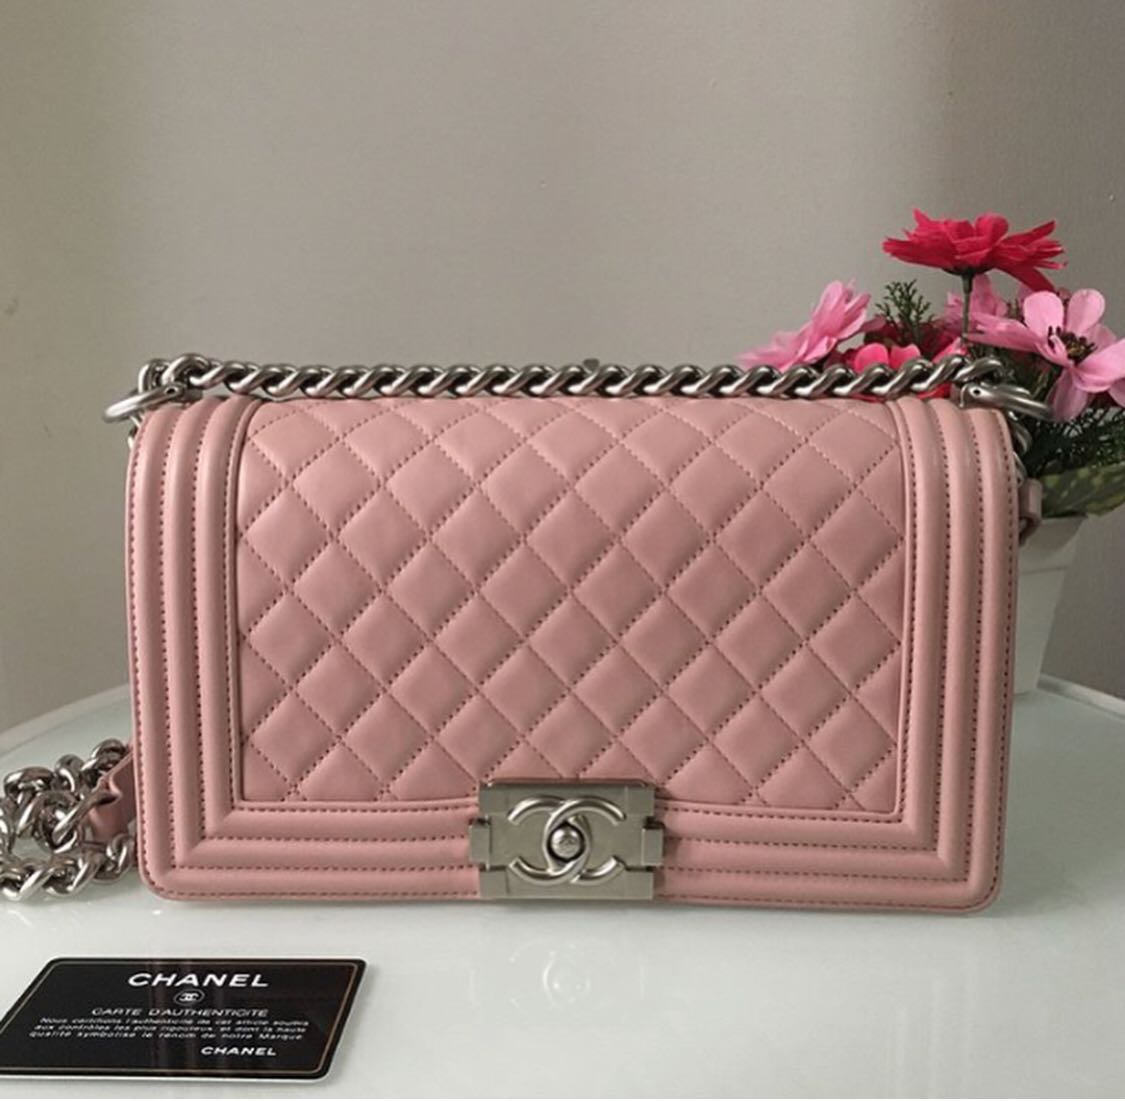 10effd0a Chanel baby pink boy, Luxury, Bags & Wallets, Handbags on Carousell